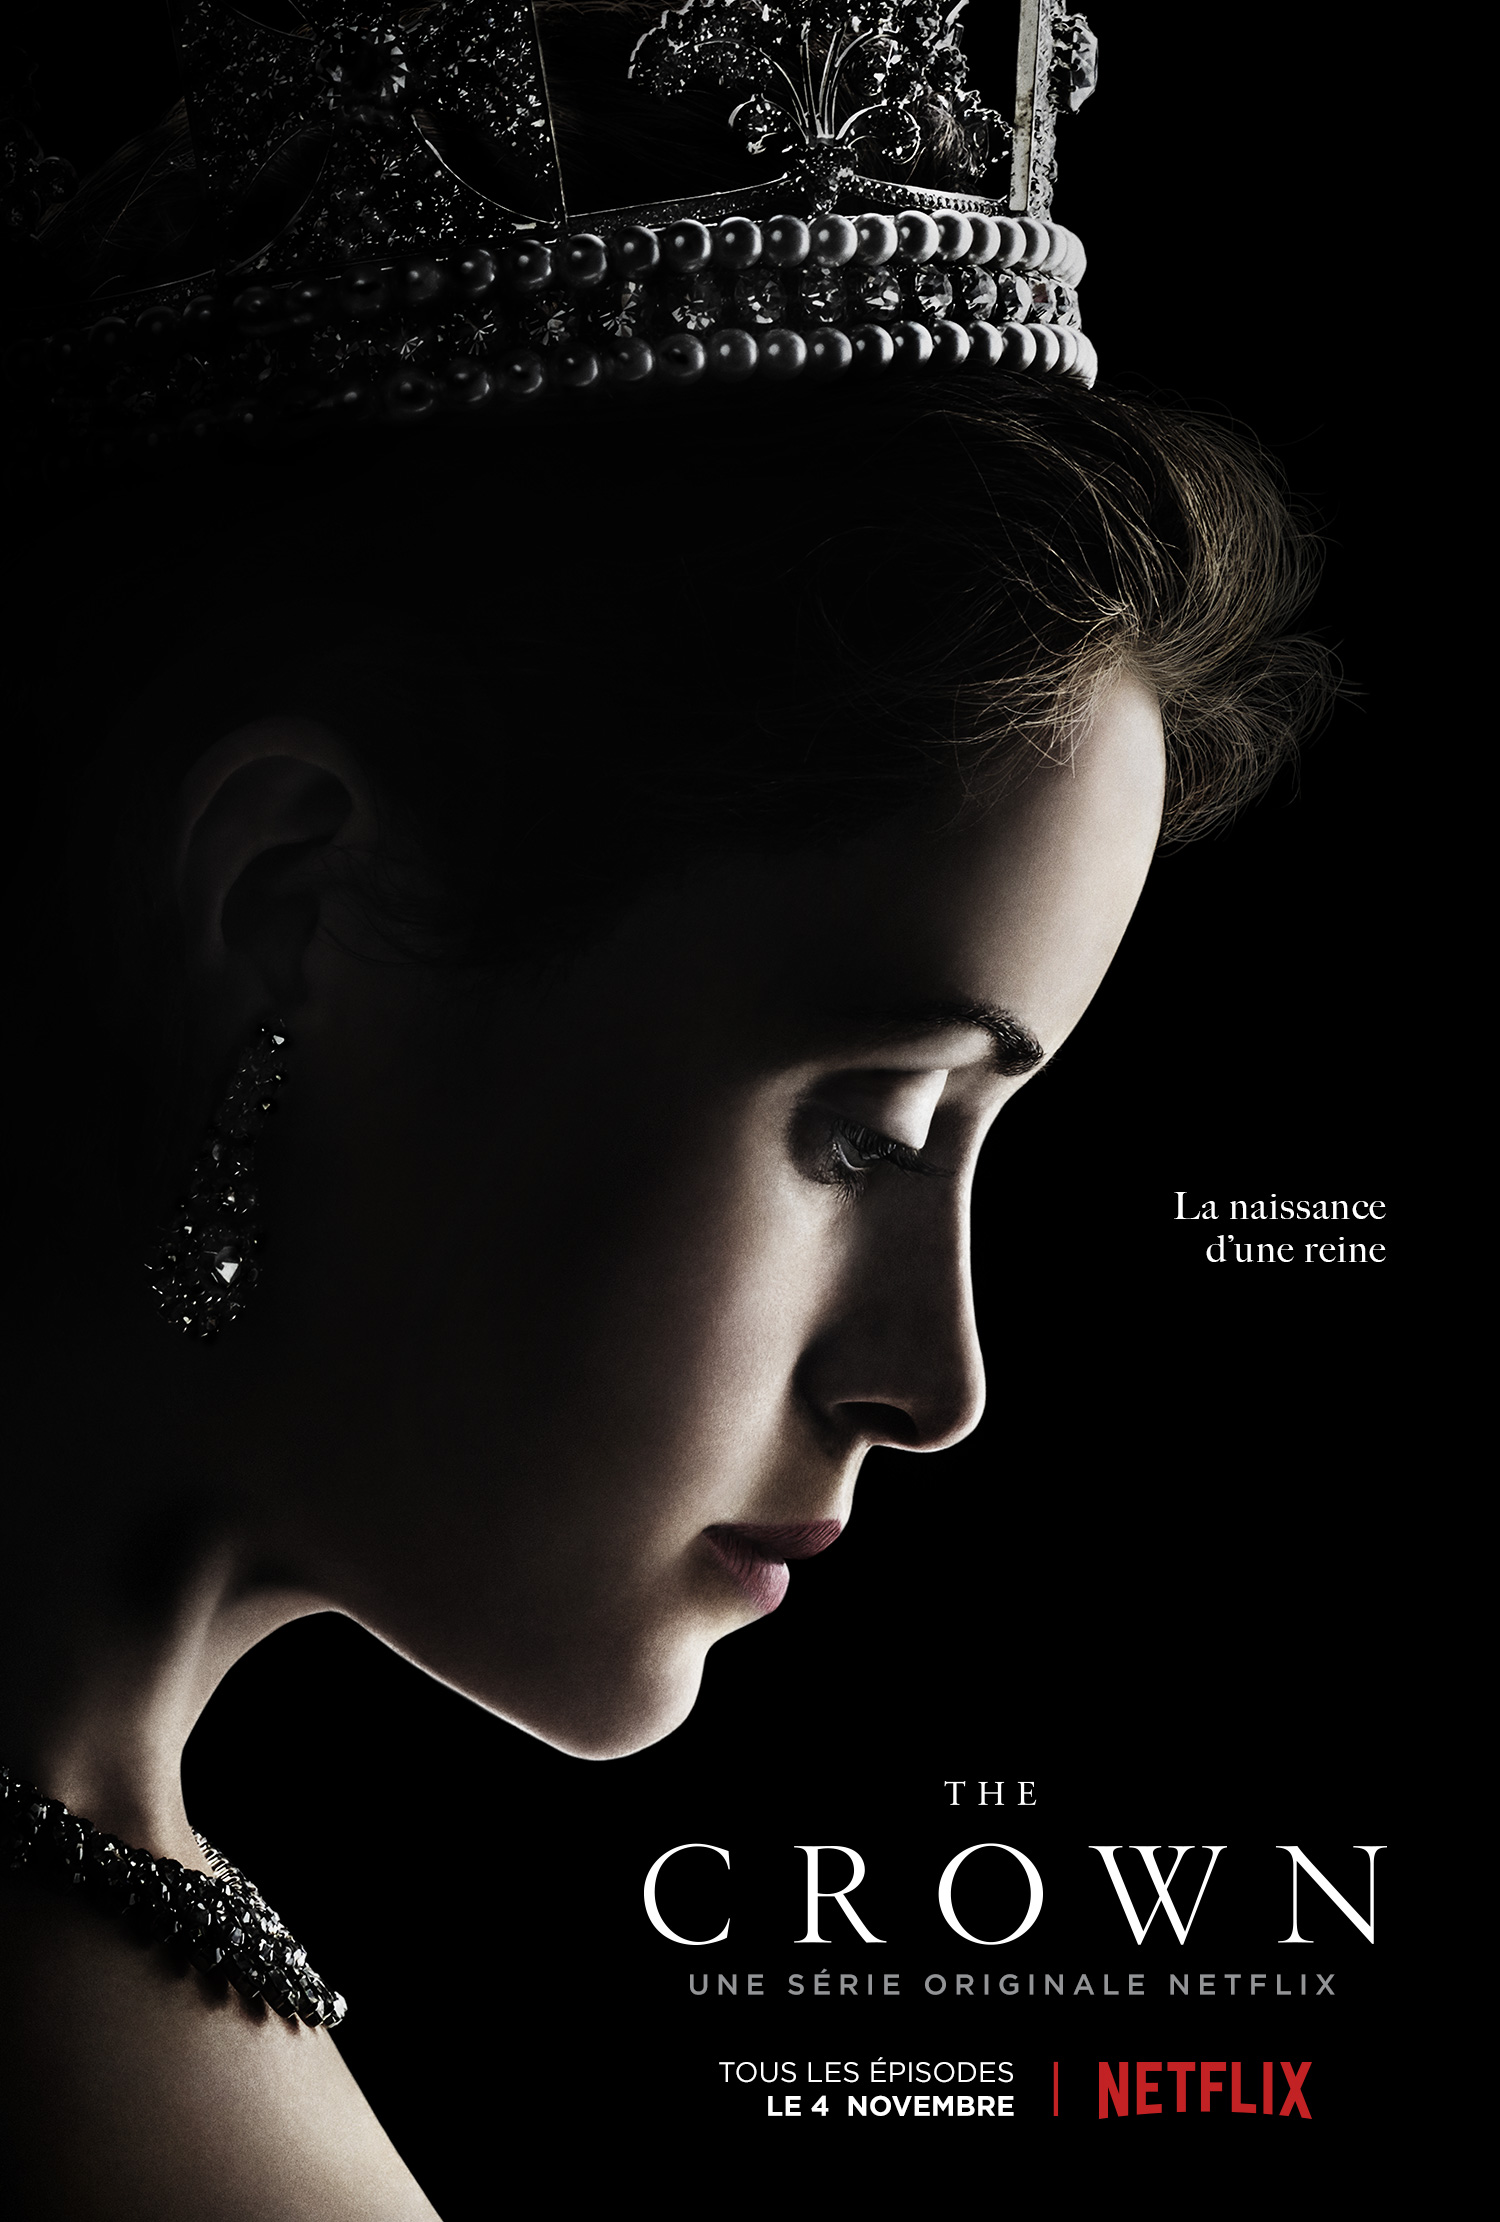 Affiche de la série The Crown